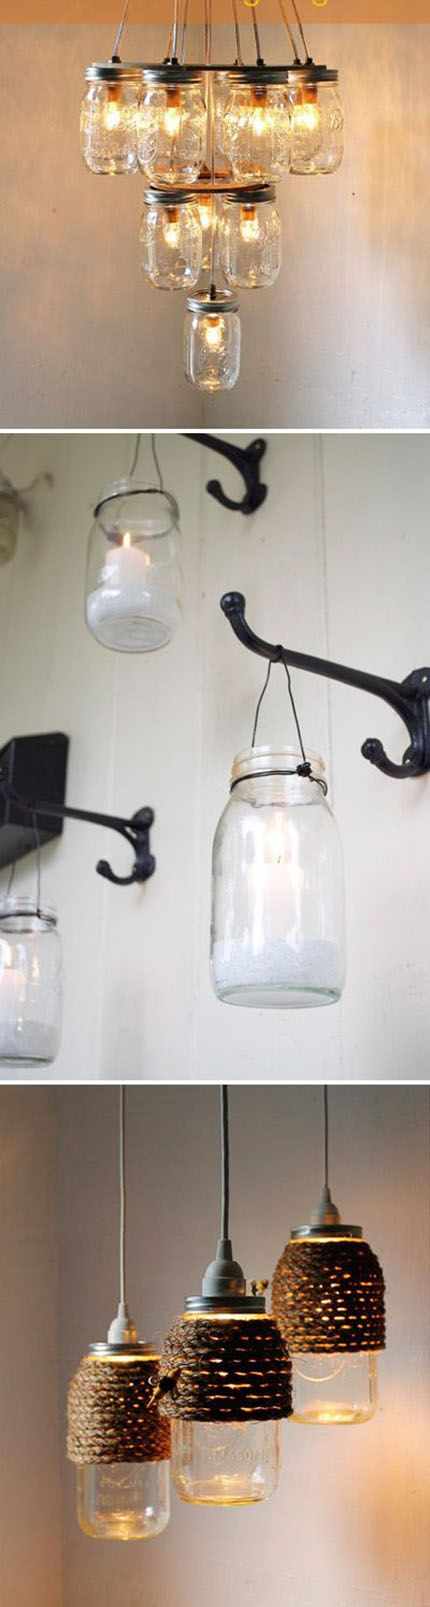 Great Jar Light Idea | DIY & Crafts Tutorials. I like the bottom one with the rope over the top.